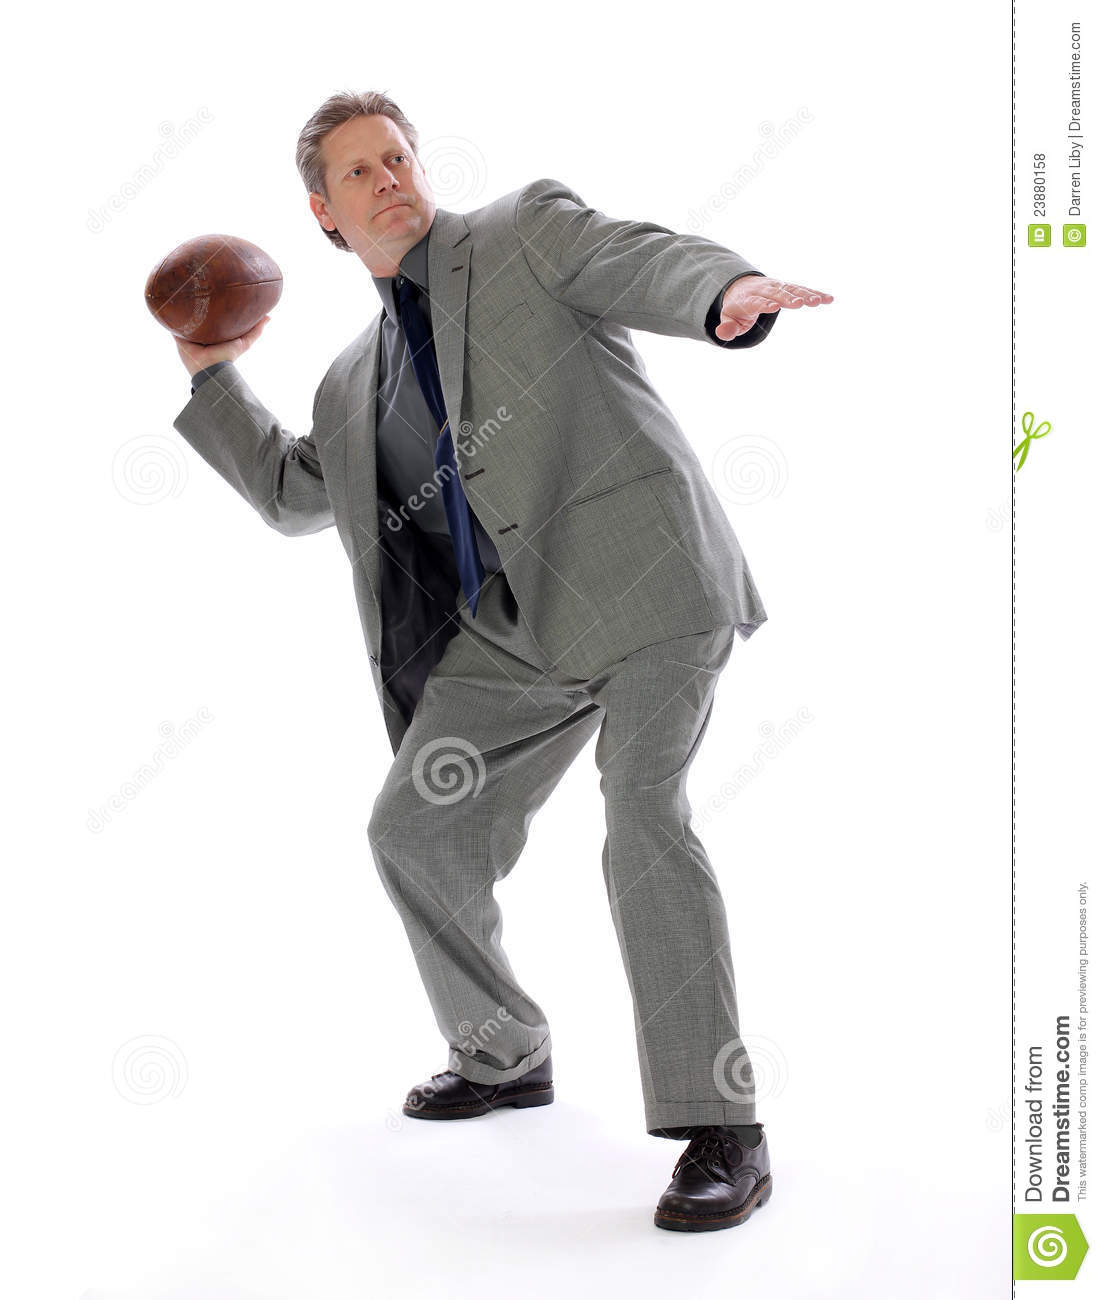 business-man-throwing-football-23880158.jpg